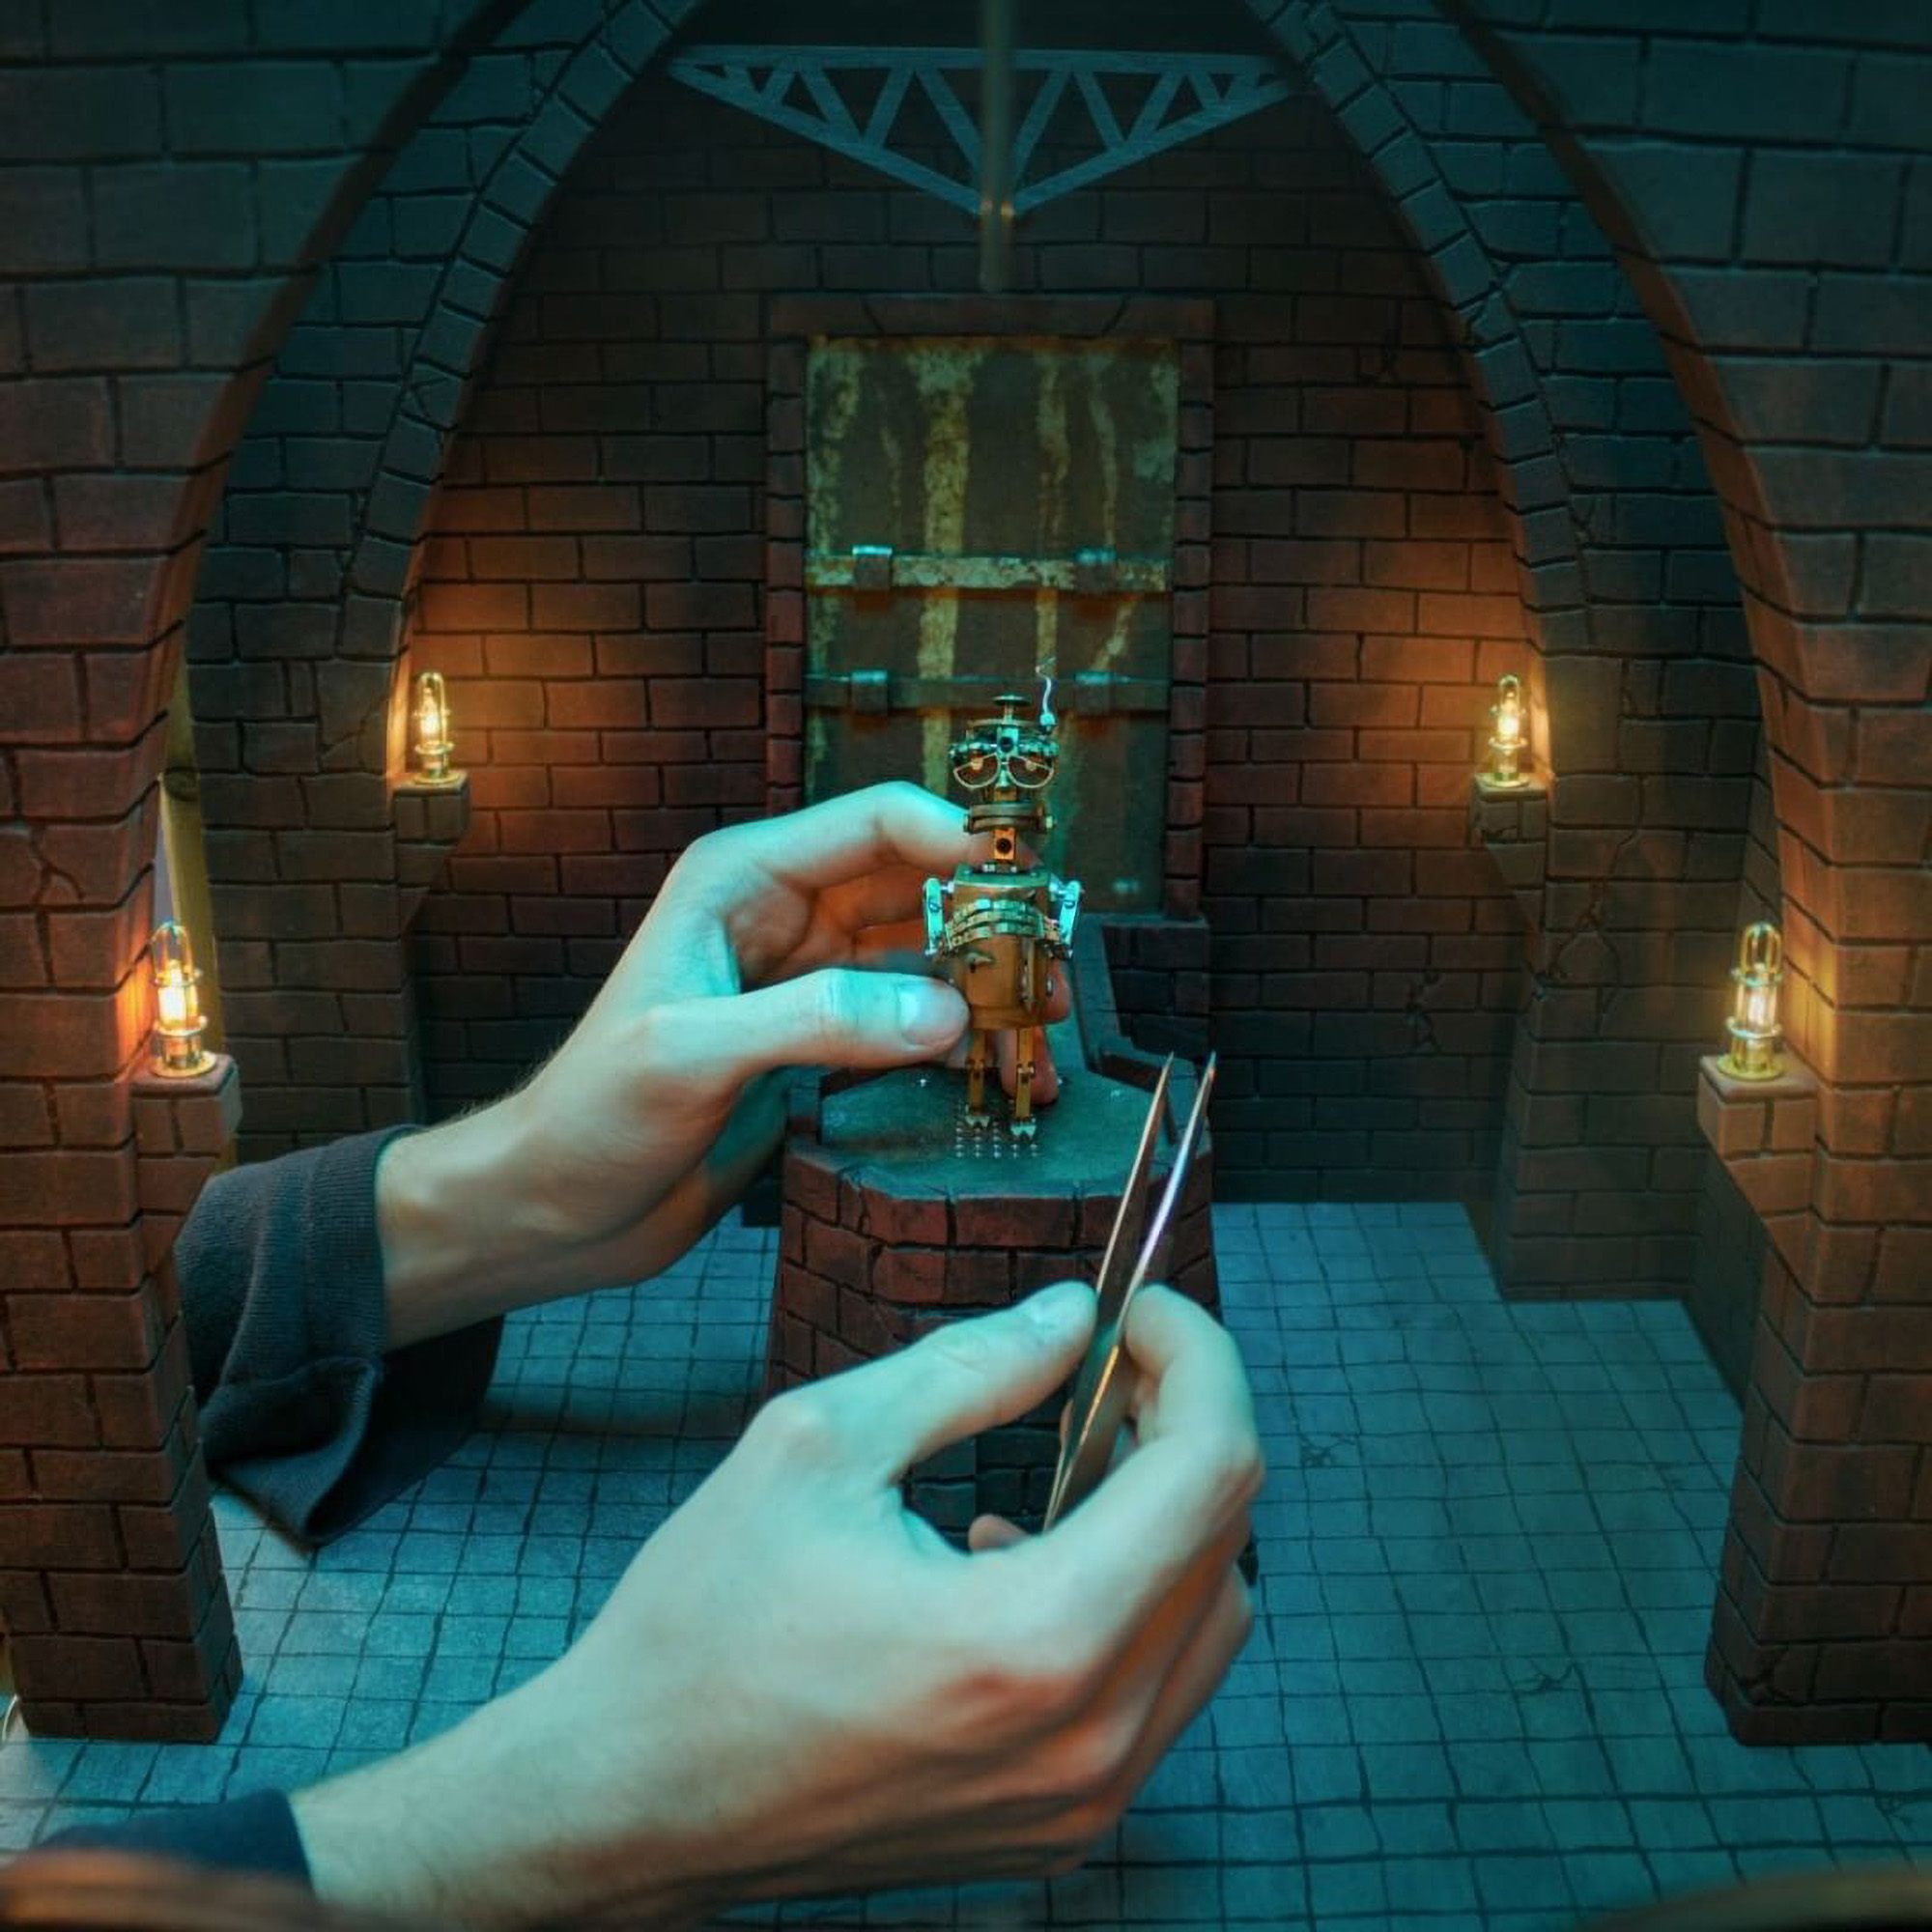 <p>Minute movements are set by hand and then photographed for Valentin Felder's stop-motion movie. (Valentin Felder/Zenger News)</p>